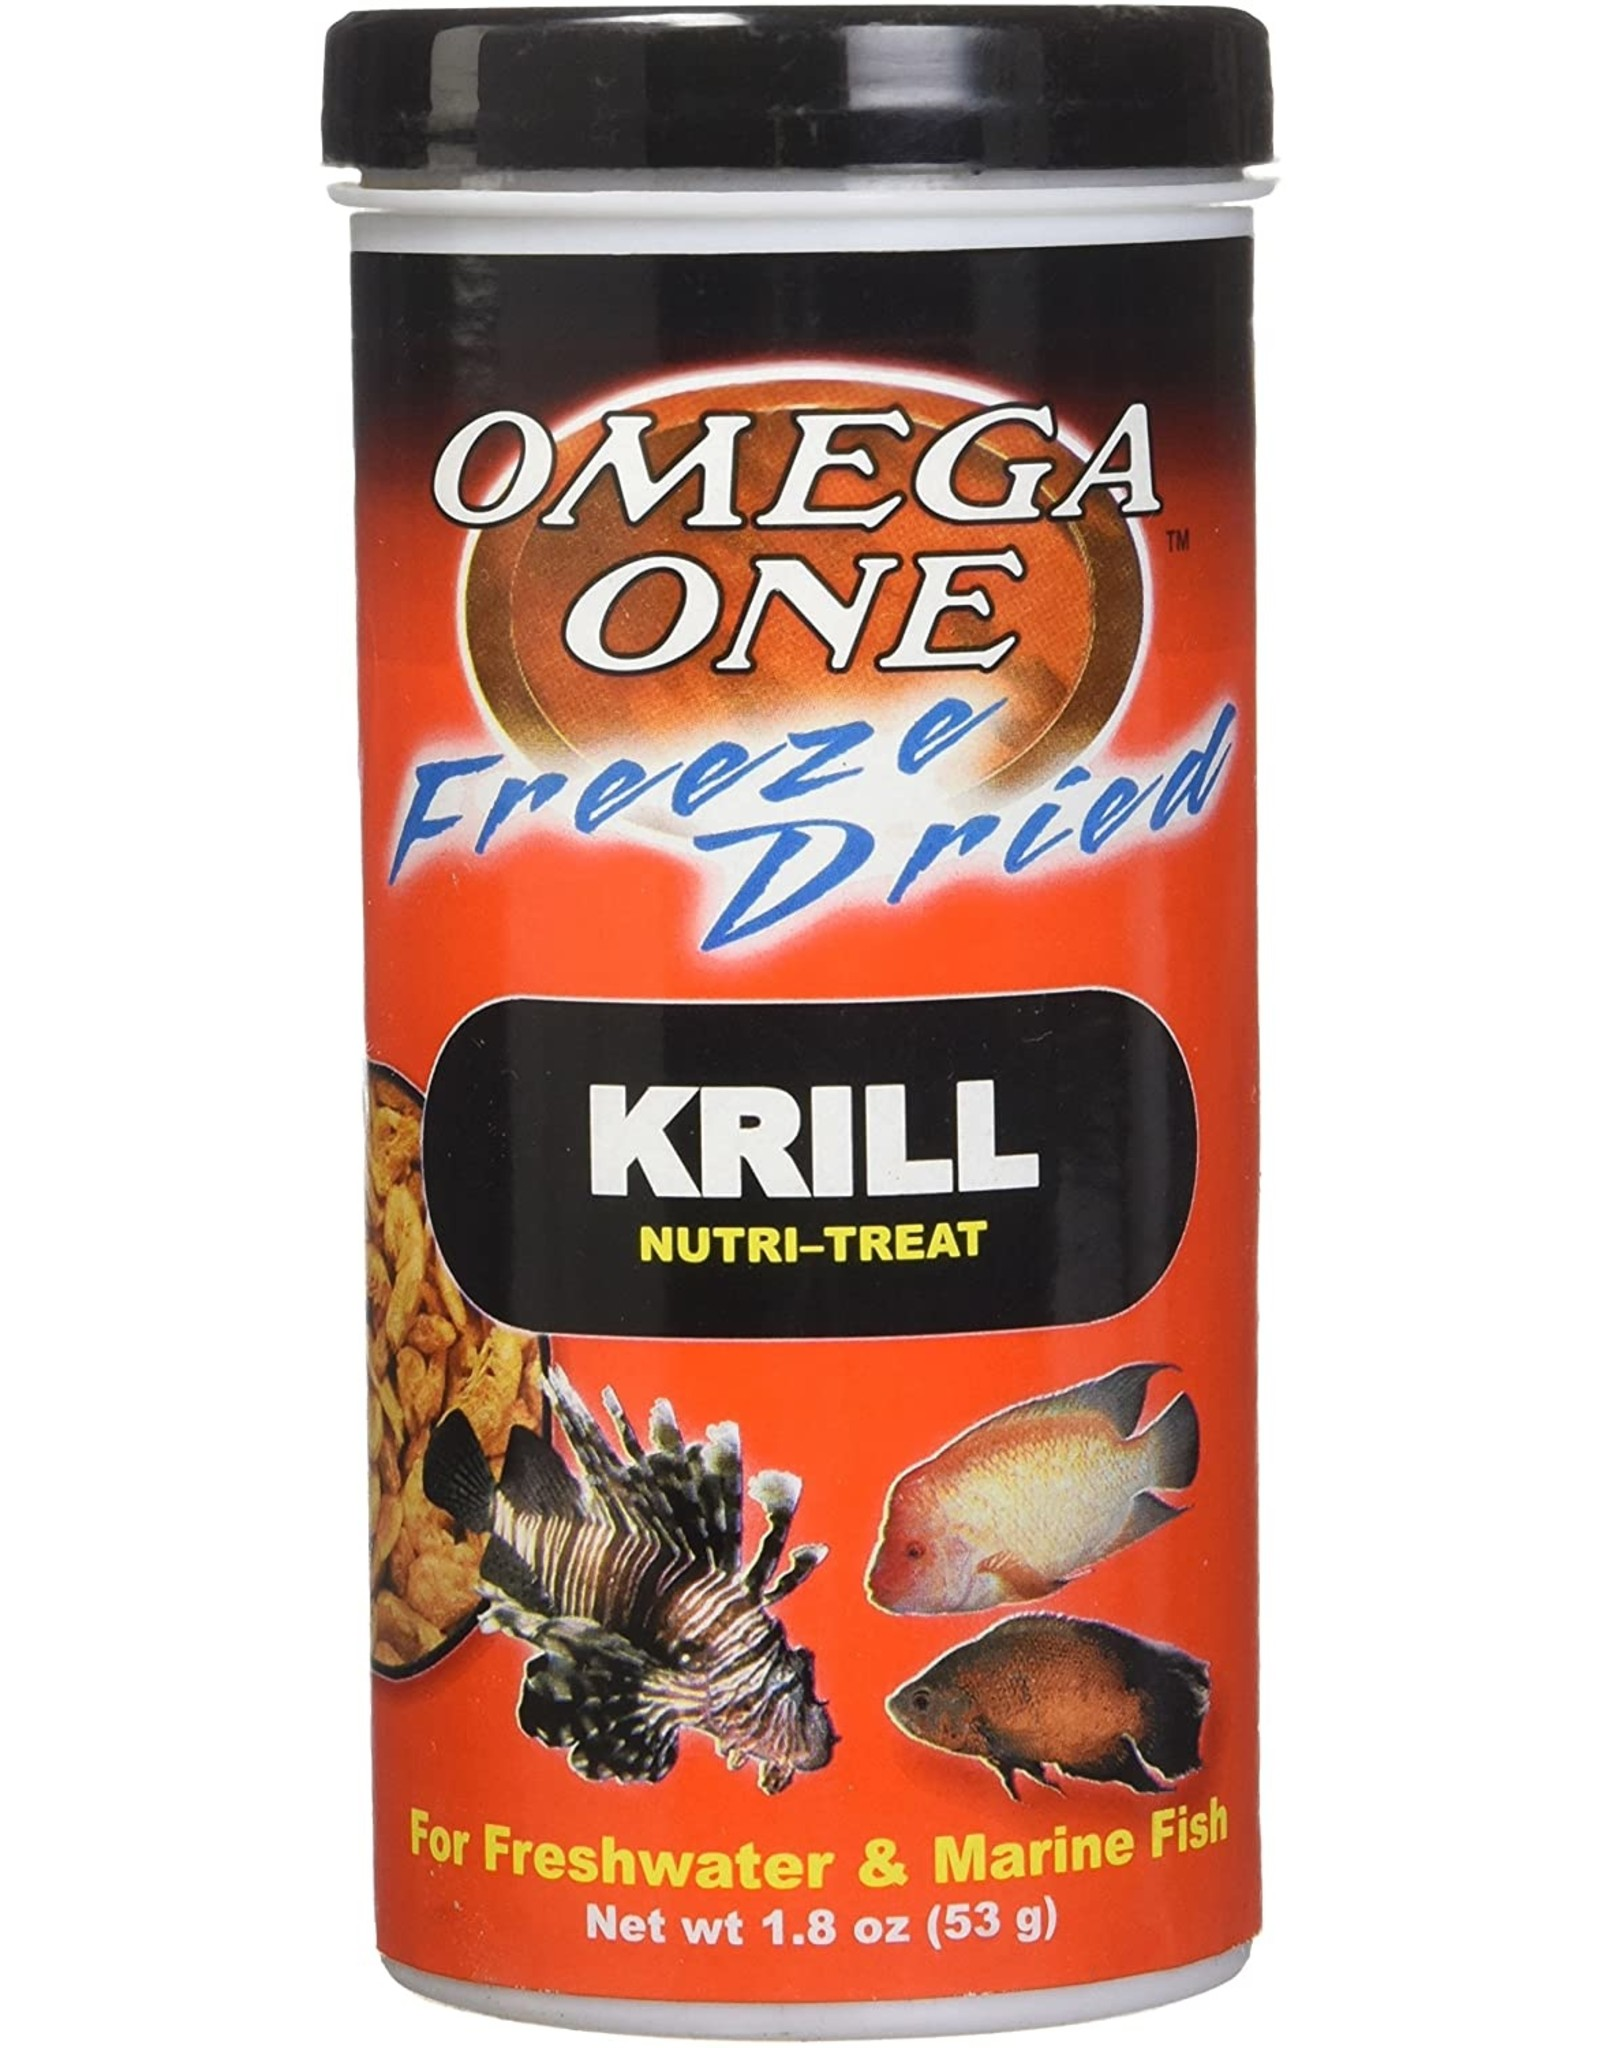 Omega One Food OMEGA ONE Freeze Dried Krill